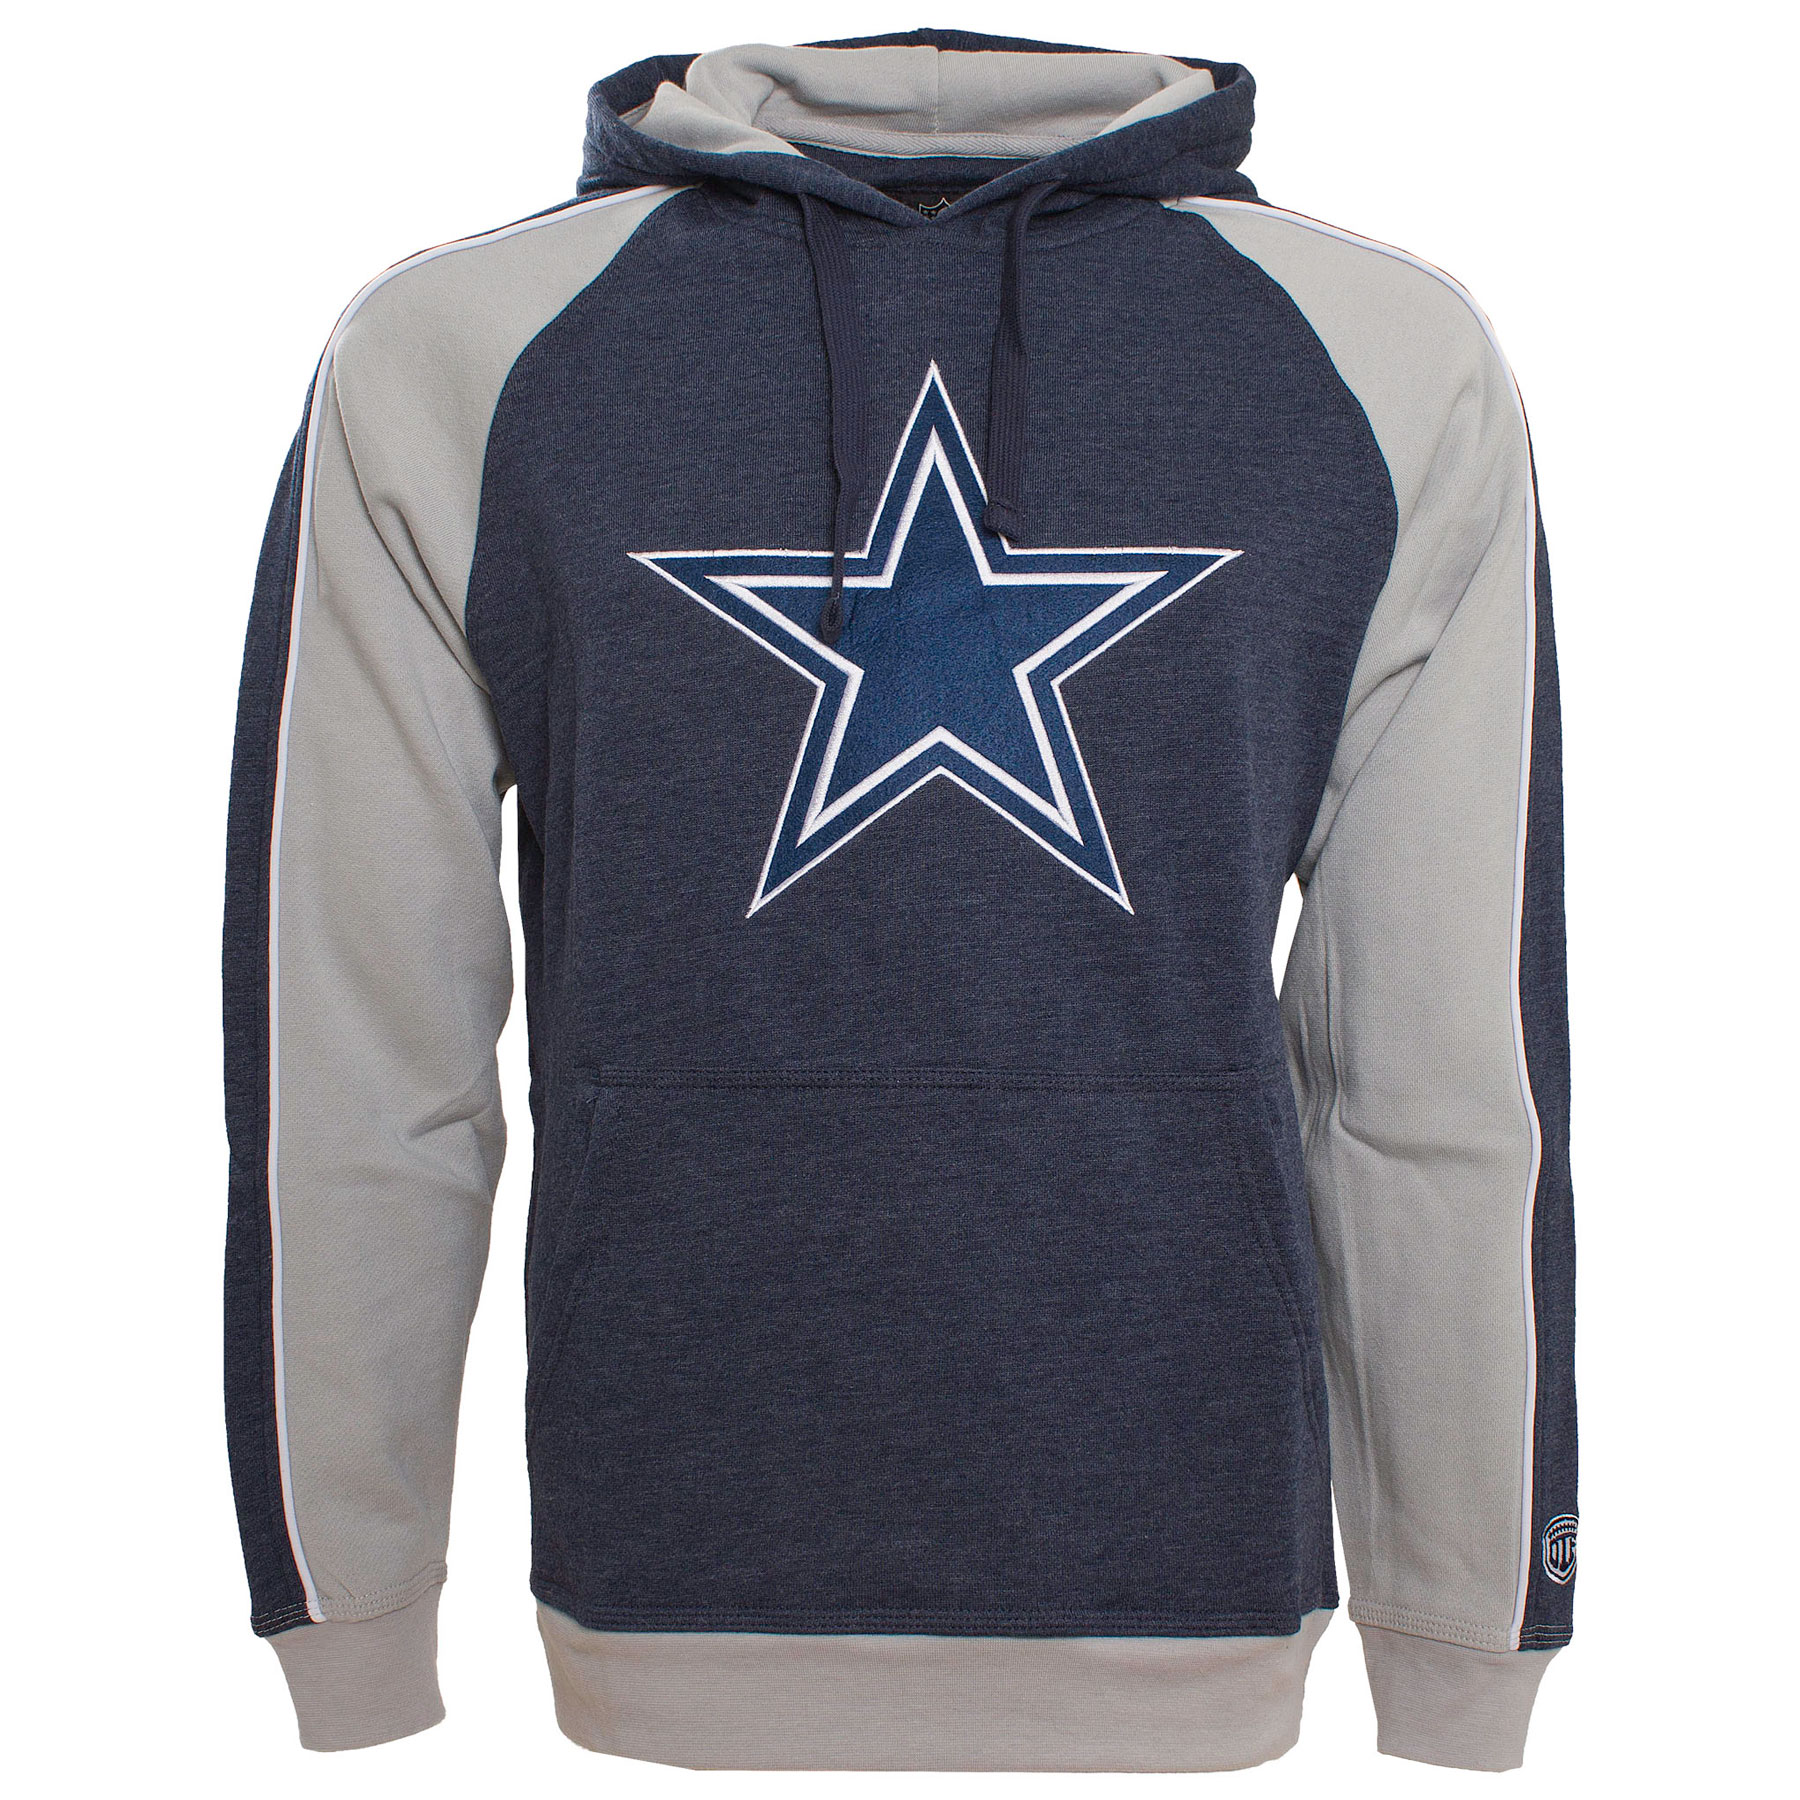 uk availability ace80 6dc29 Dallas Cowboys No Mercy Hoodie